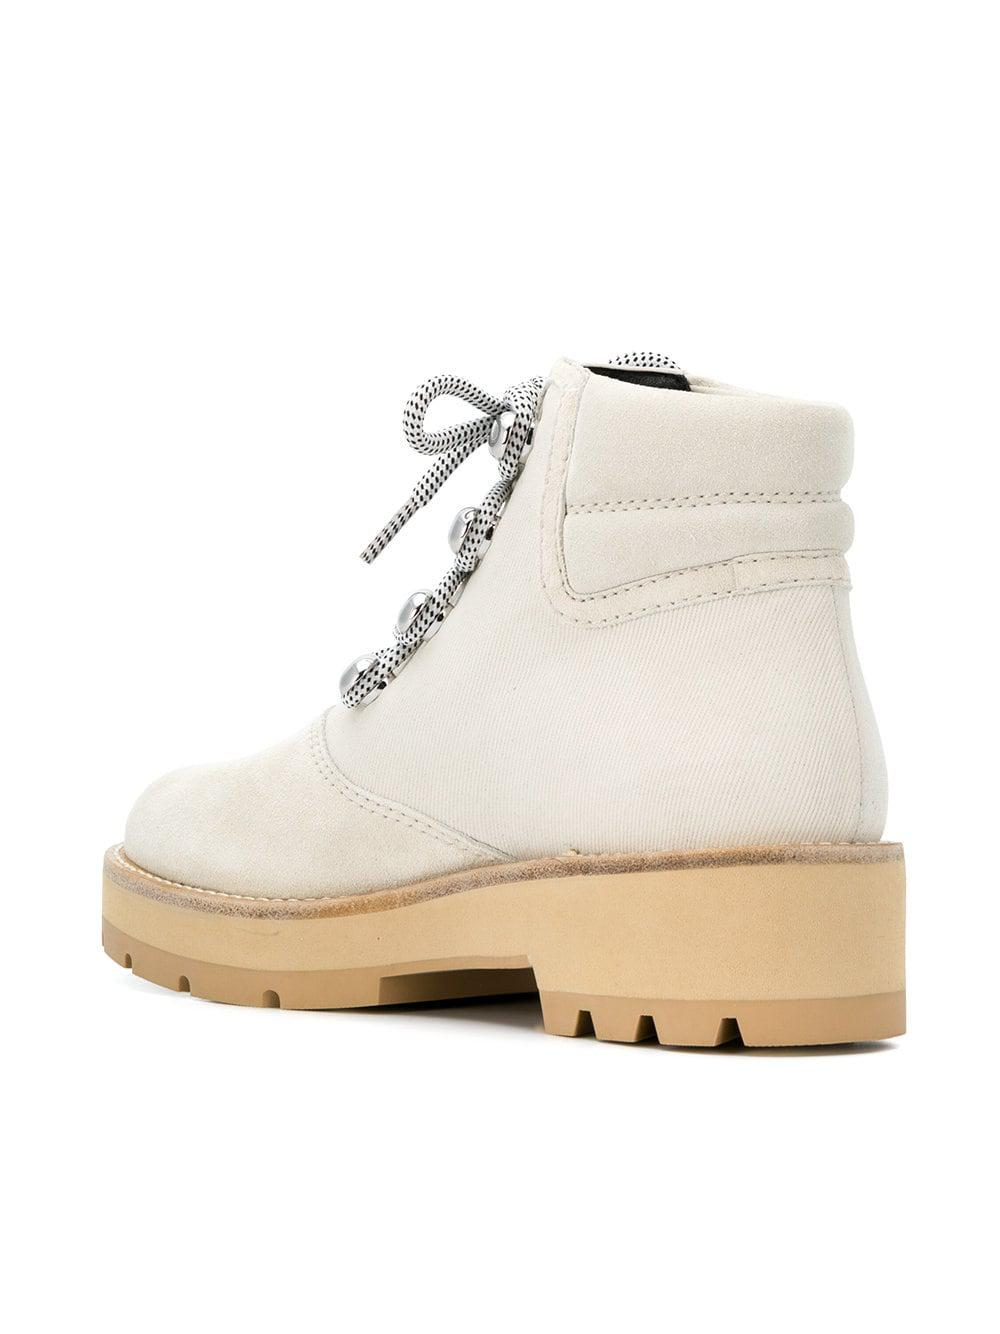 7c2f5989683d7 Lyst - 3.1 Phillip Lim Dylan Lace Up Boots in White